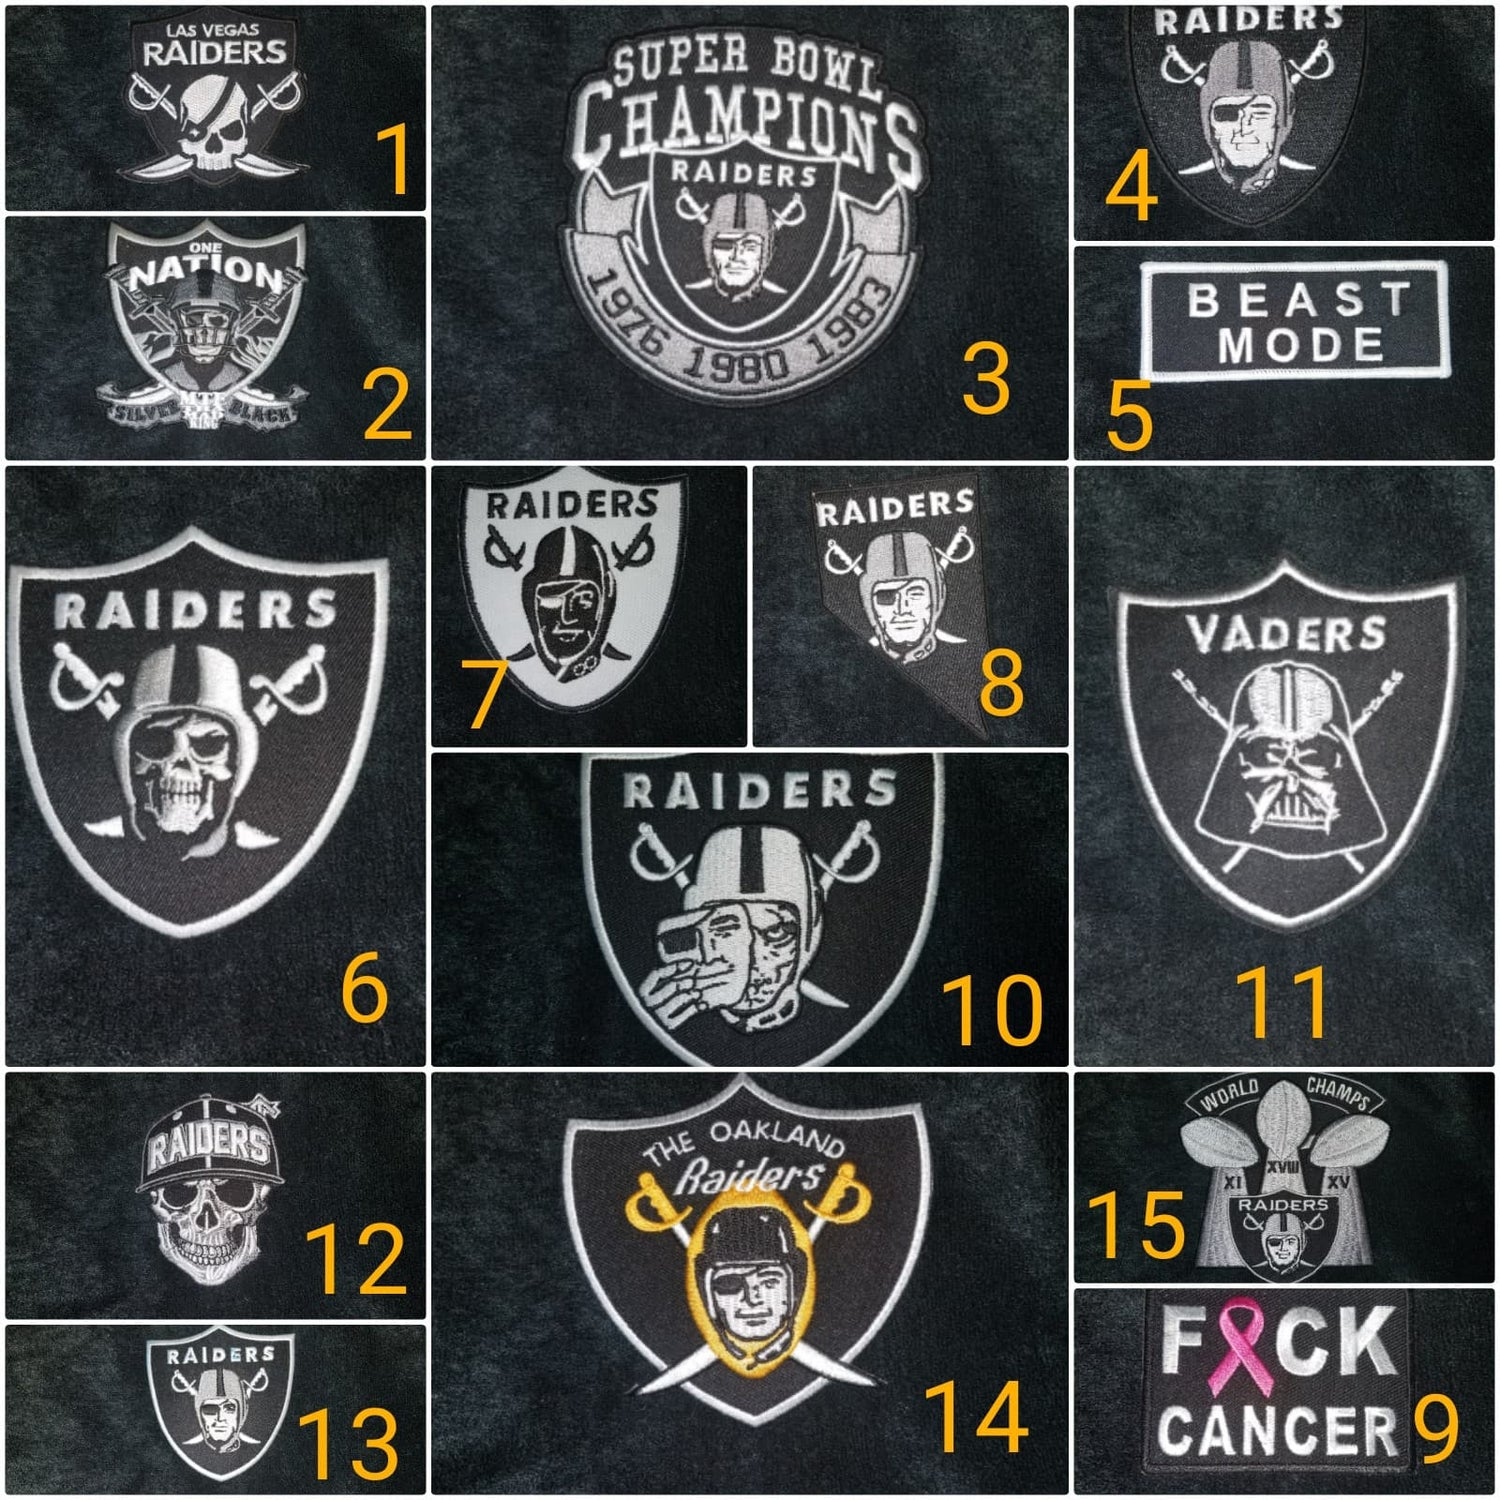 Image of Raiders Themed Shorts a & All Patch Options